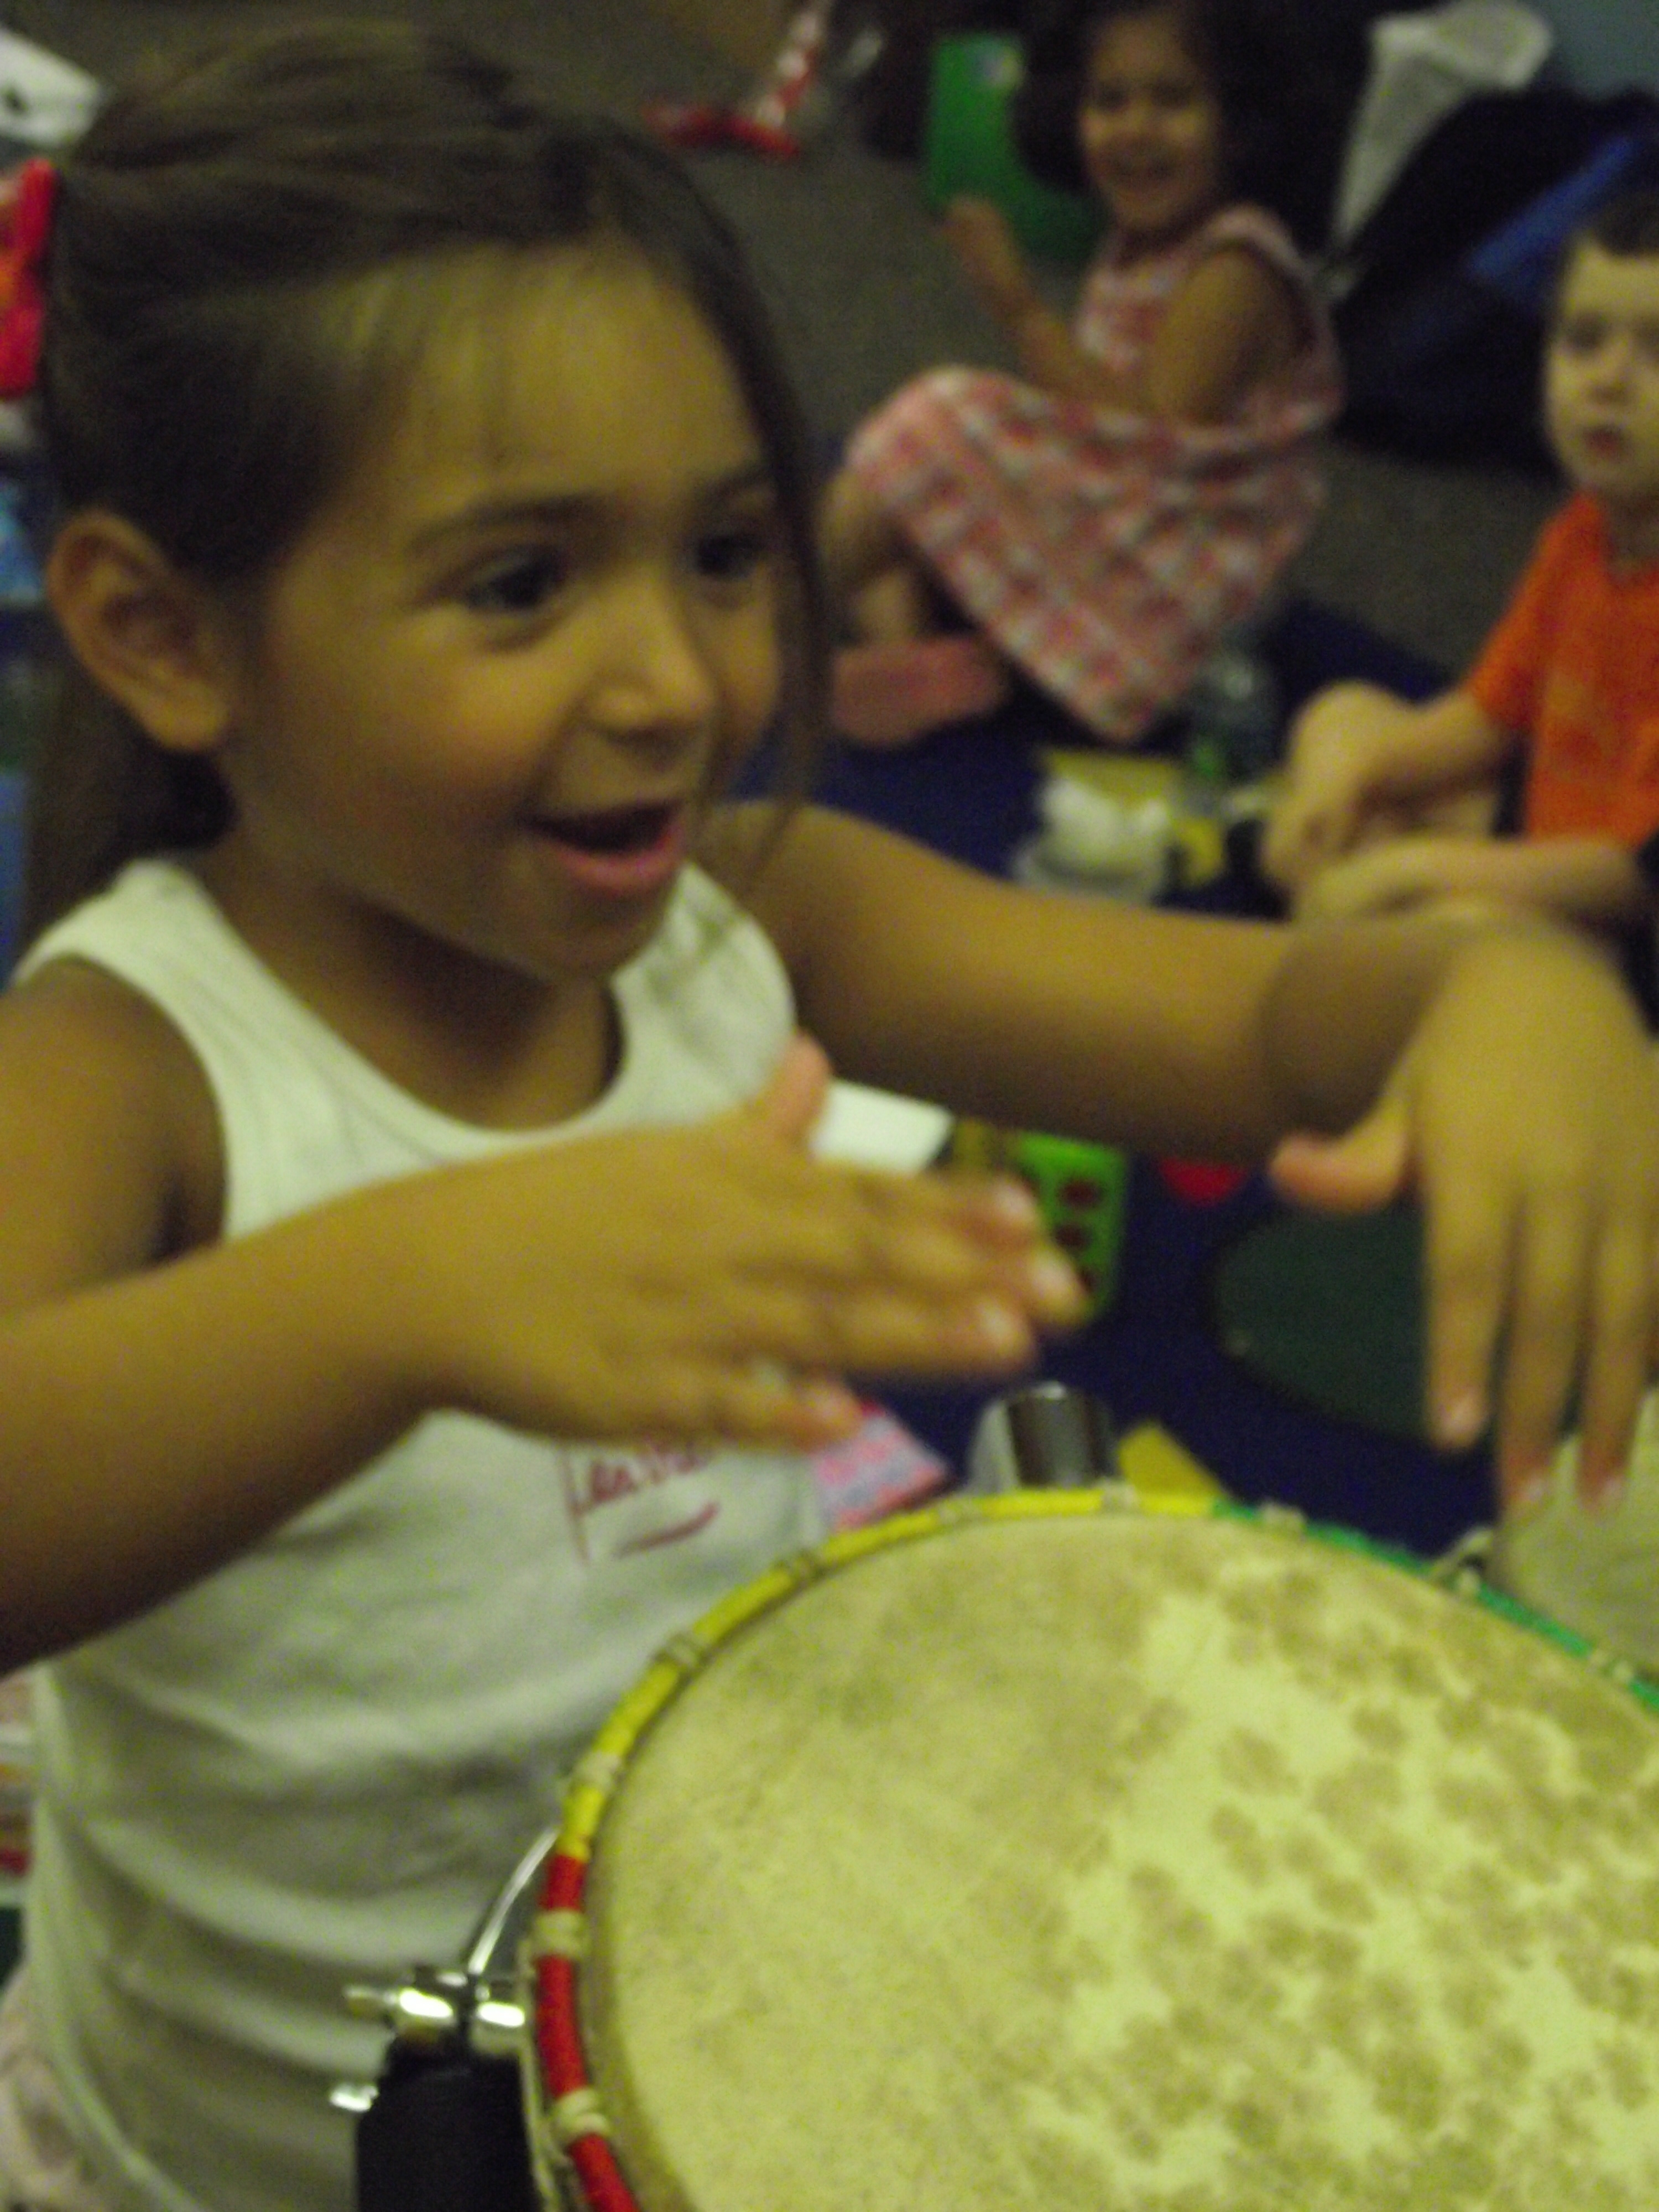 77d96f80ecc688848137_Girl_Drumming.JPG